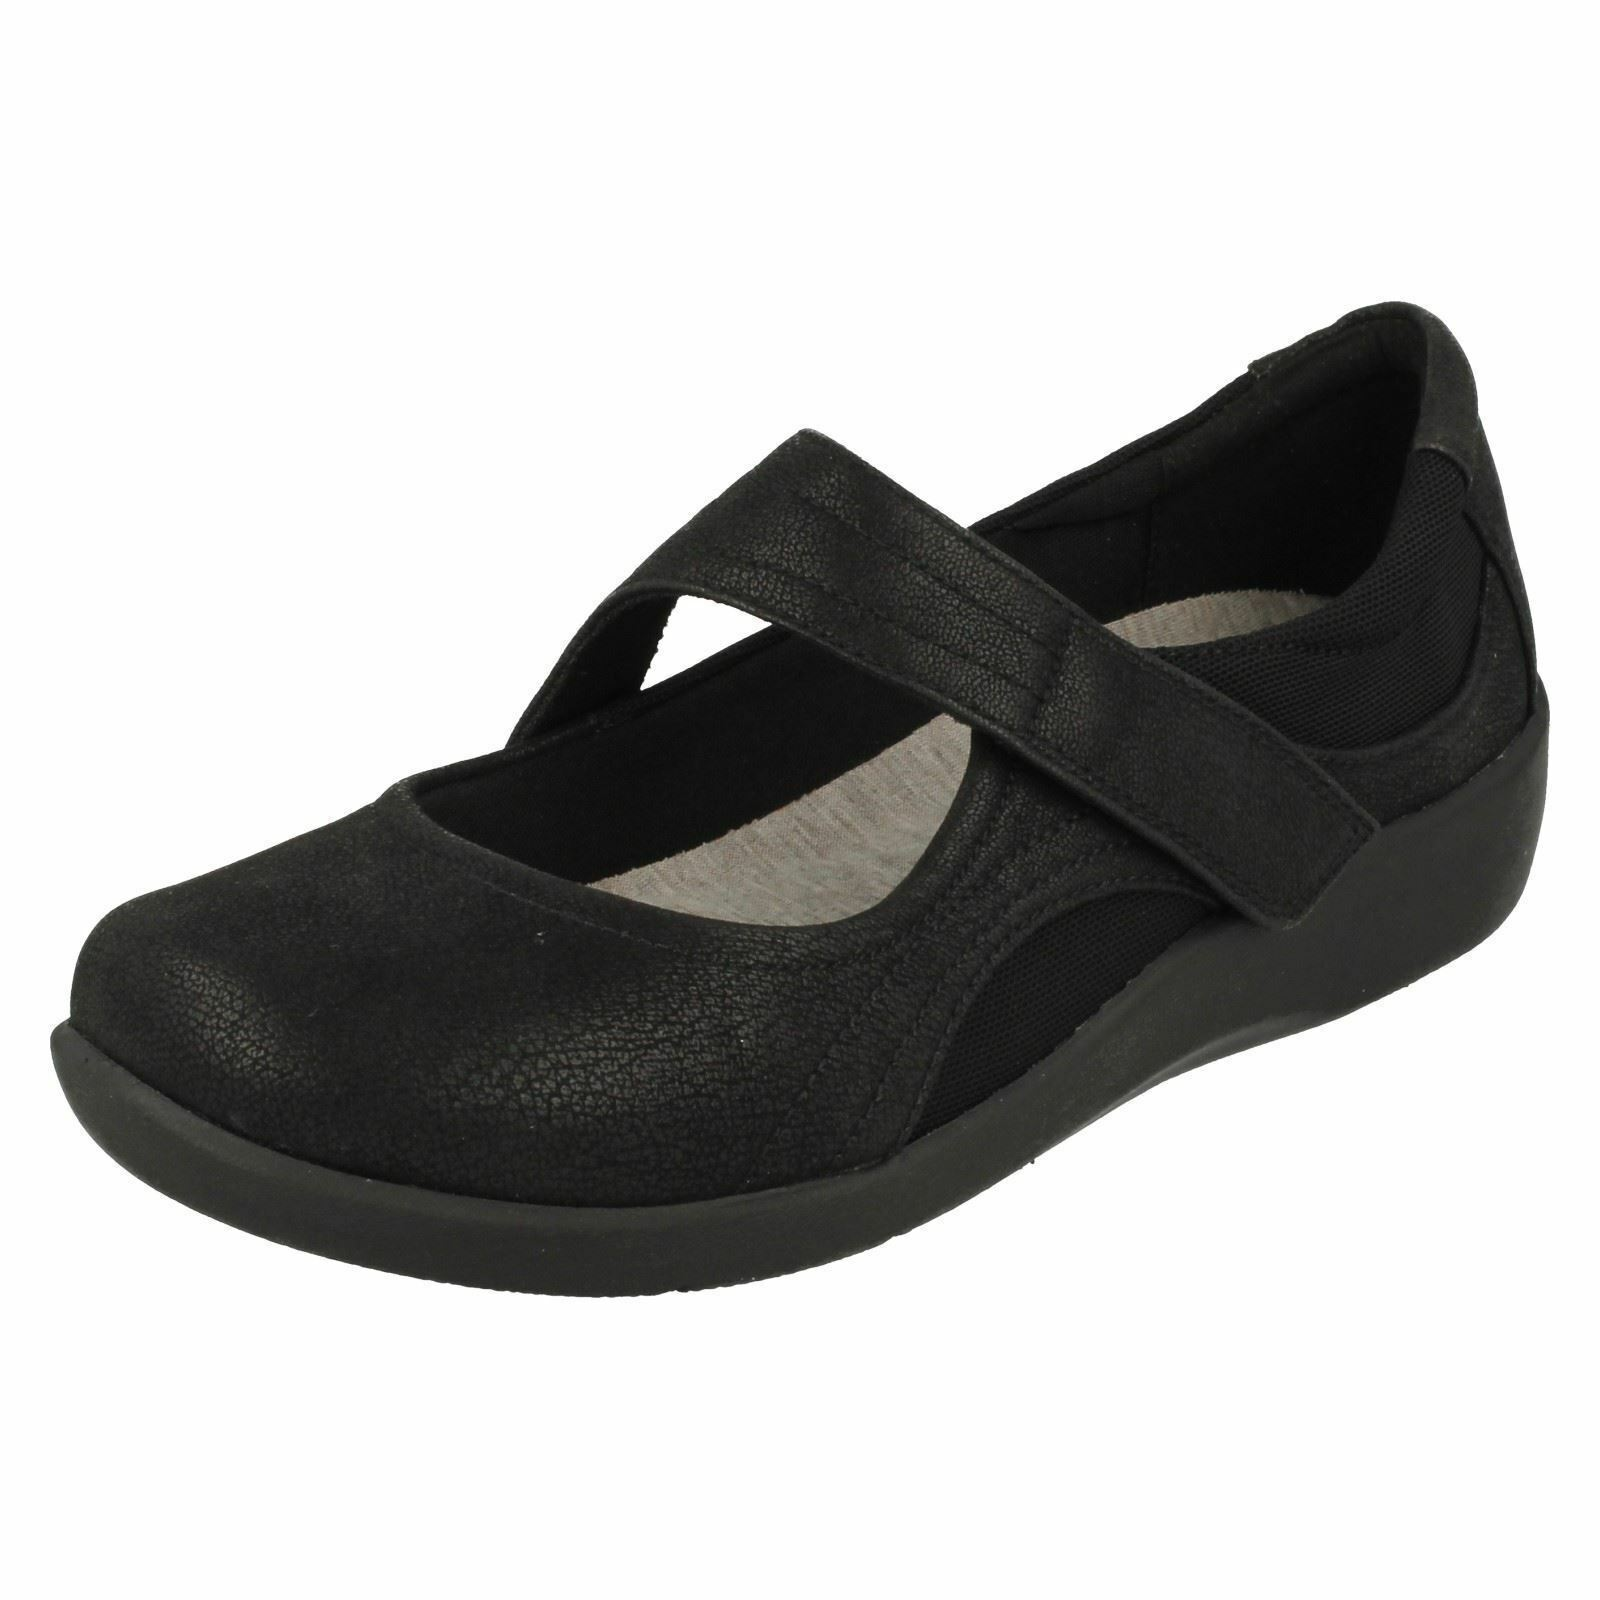 Clarks Sillian BELLA DONNA CLOUD passo-passo Largo E Fit Scarpa